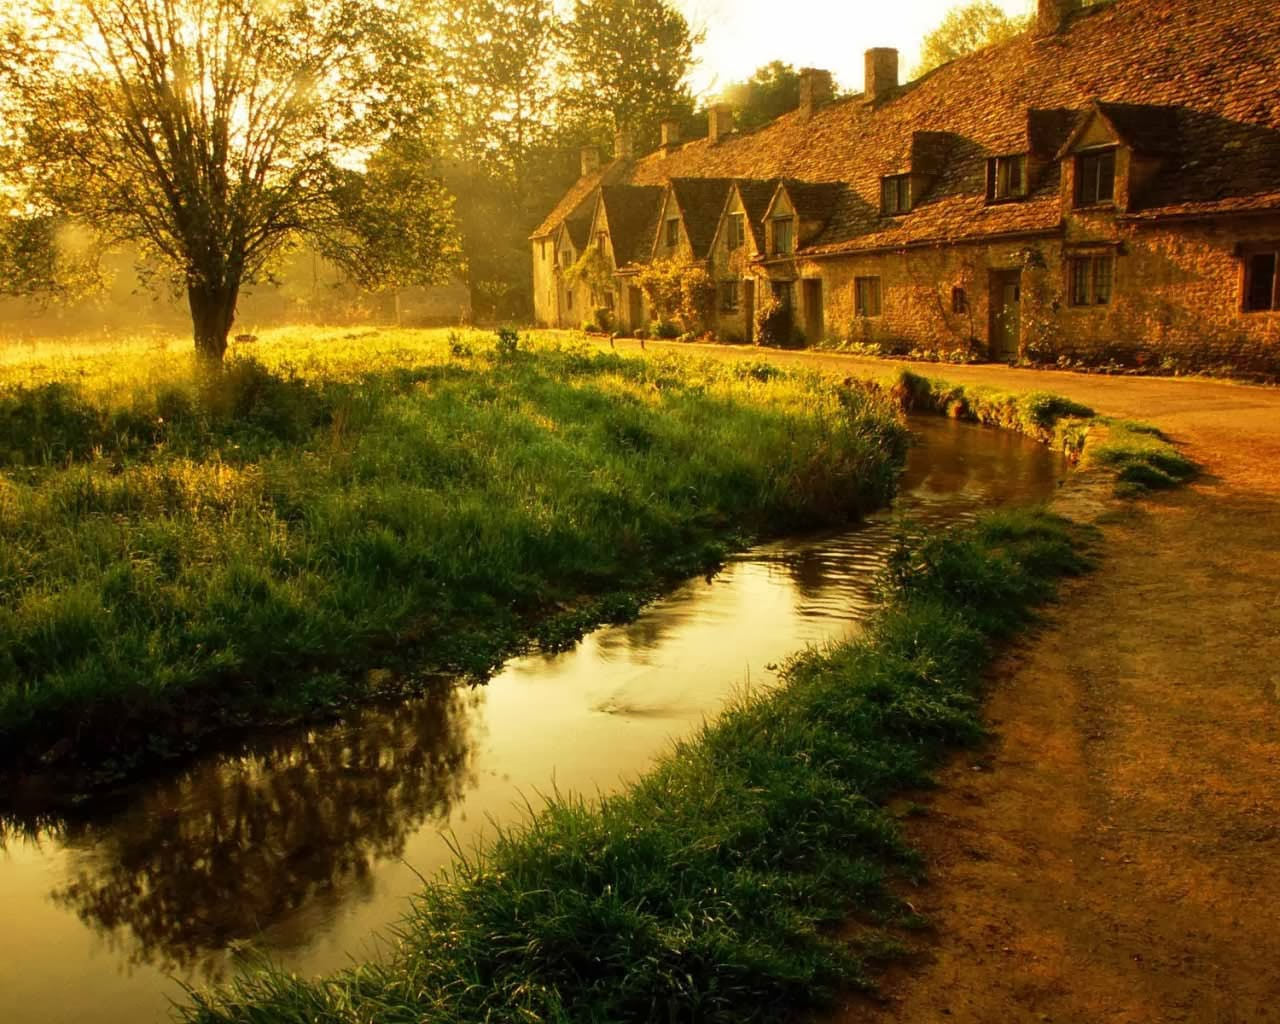 HD Wallpapers: English Cottage Wallpapers